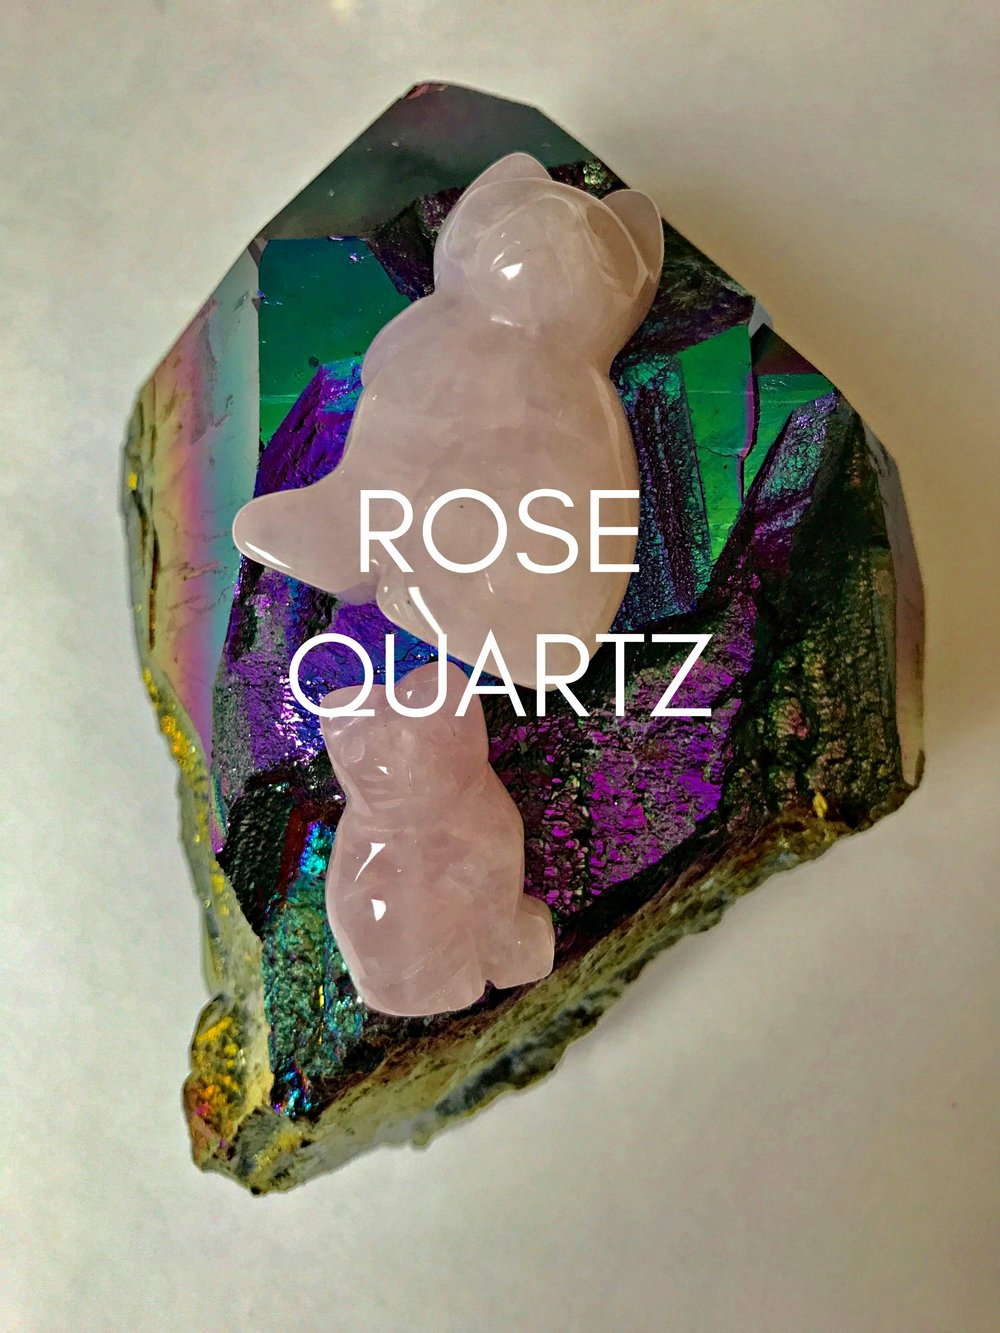 ROSE-QUARTZ-LABEL.jpg